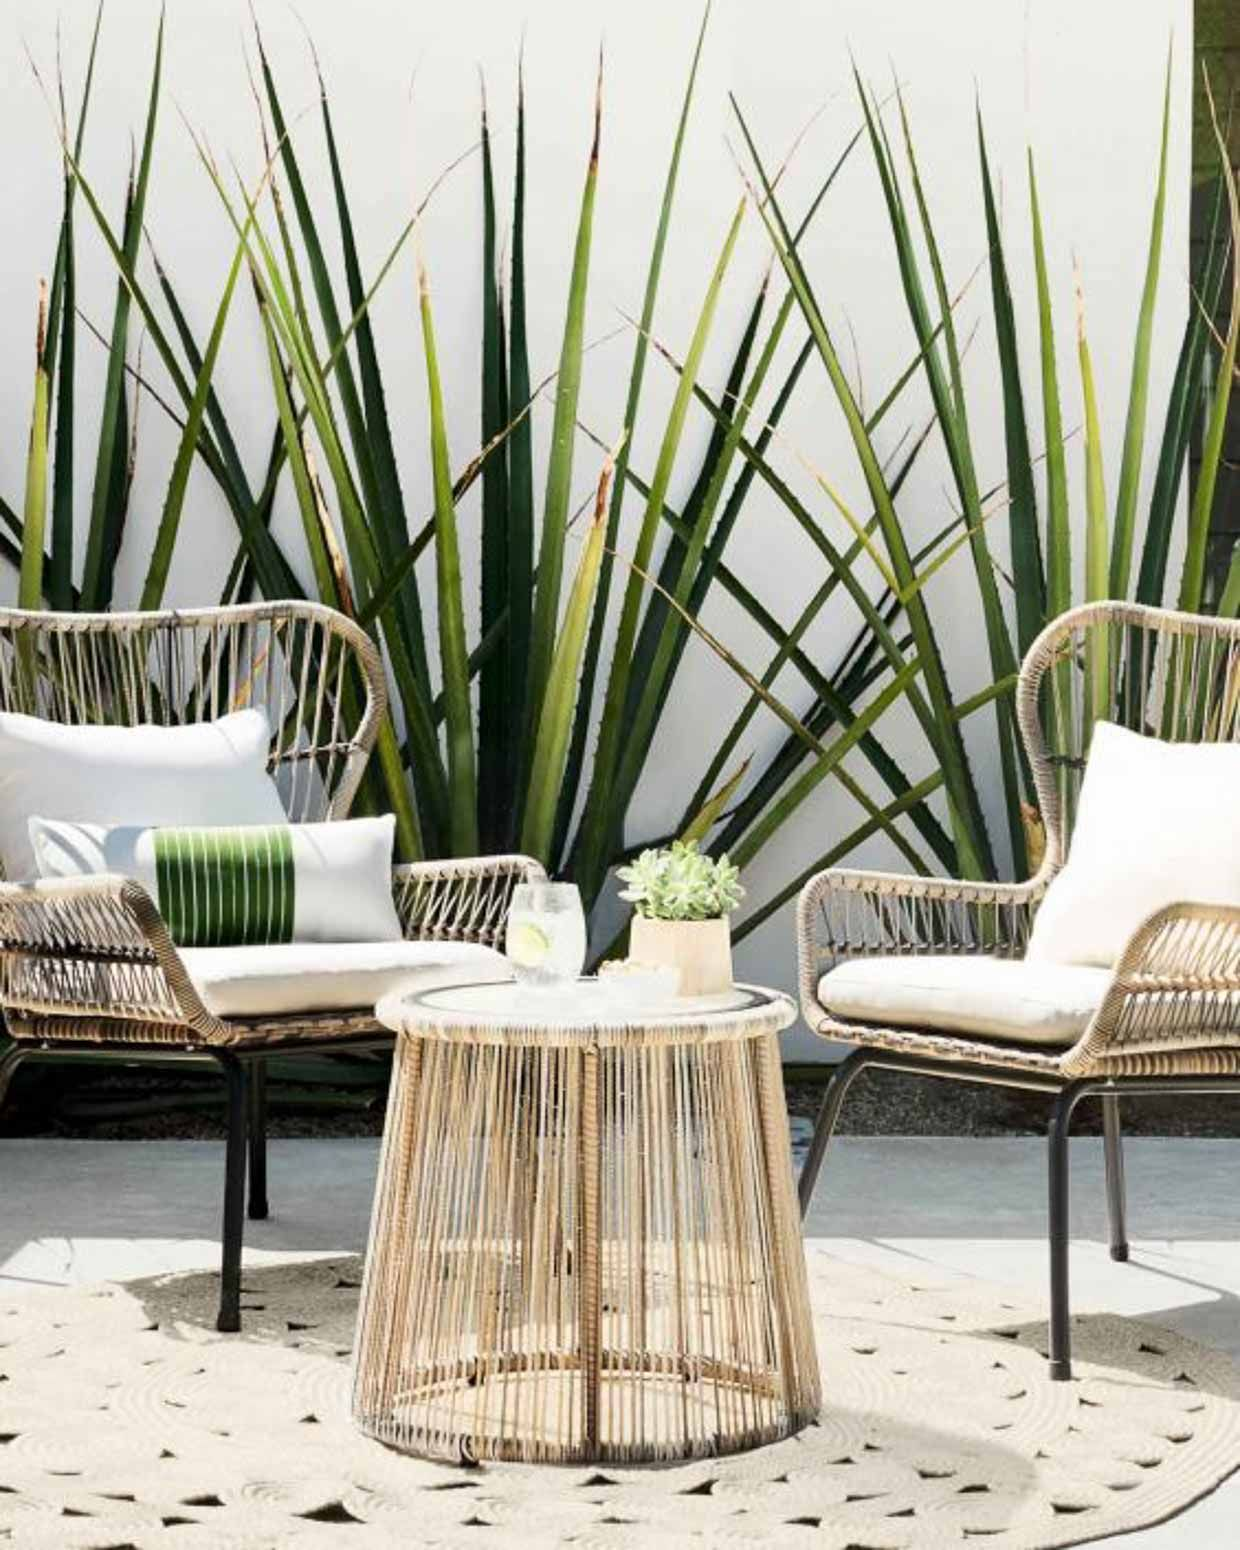 rattan chairs, rattan coffee table, patterned rug, grey floor